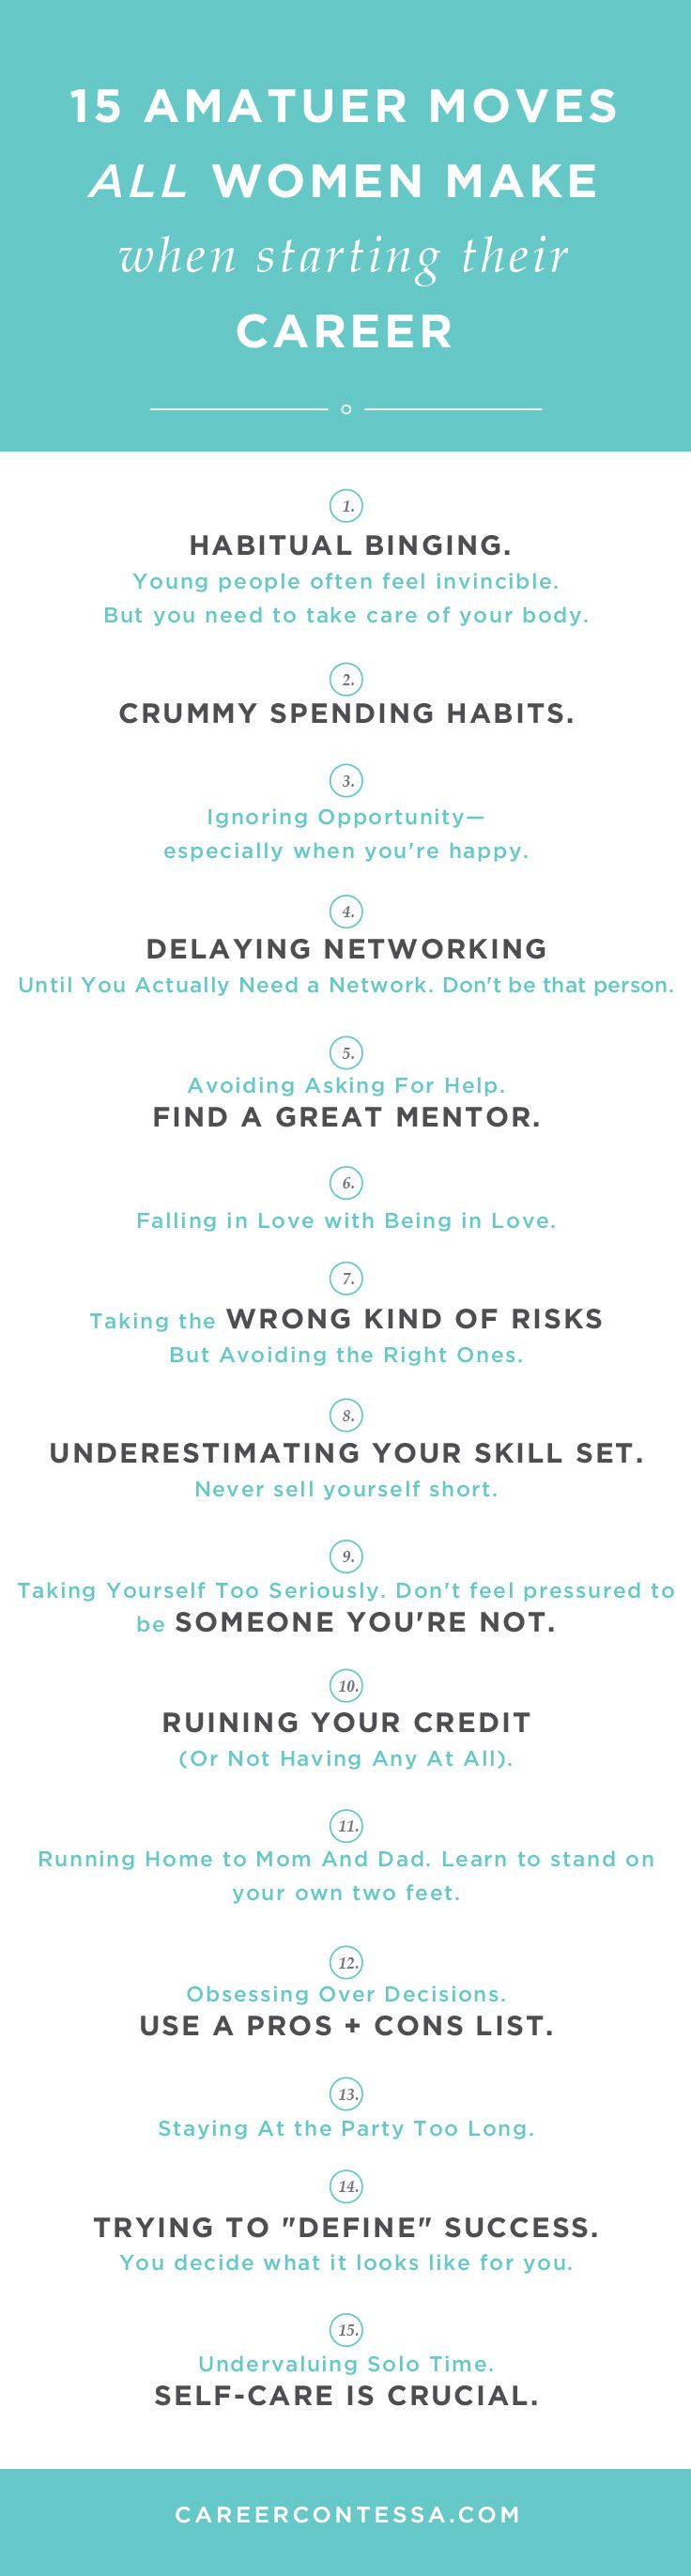 15 mistakes you *don't* want to make at work! Career advice for recent grads and young adults. Be successful at your job by not doing these things.